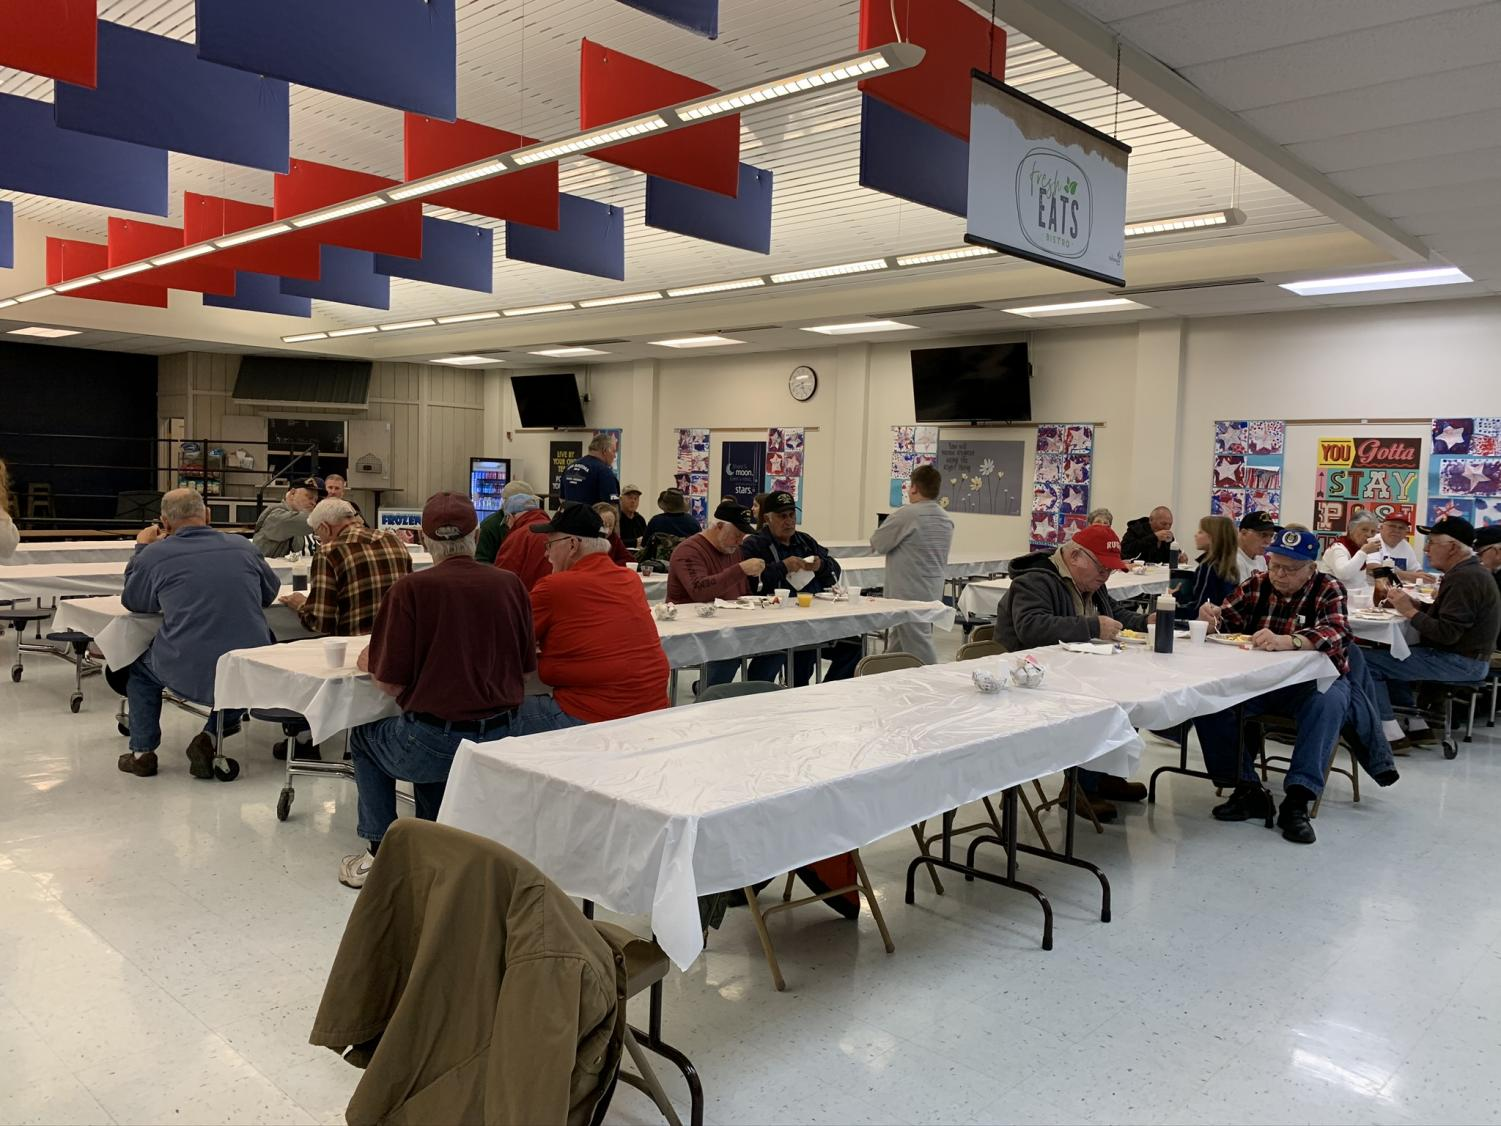 The Veterans Day Breakfast was held on Nov 11 to honor and thank the veterans who protect and serve our country.